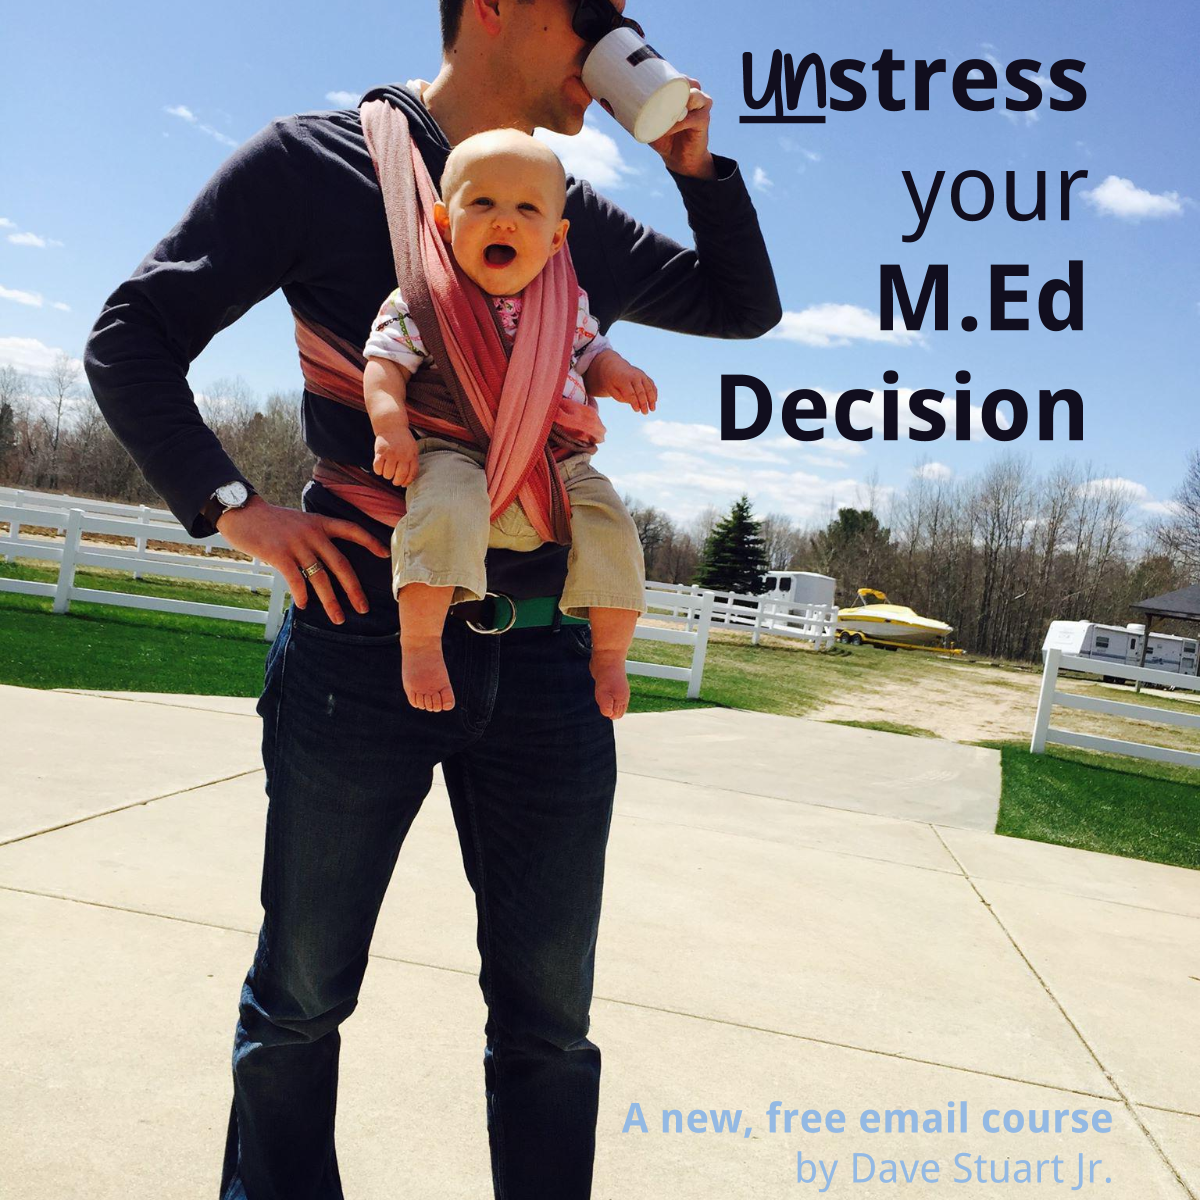 Deciding on your M.Ed shouldn't be stressful -- a new, free email course. Hope it helps.